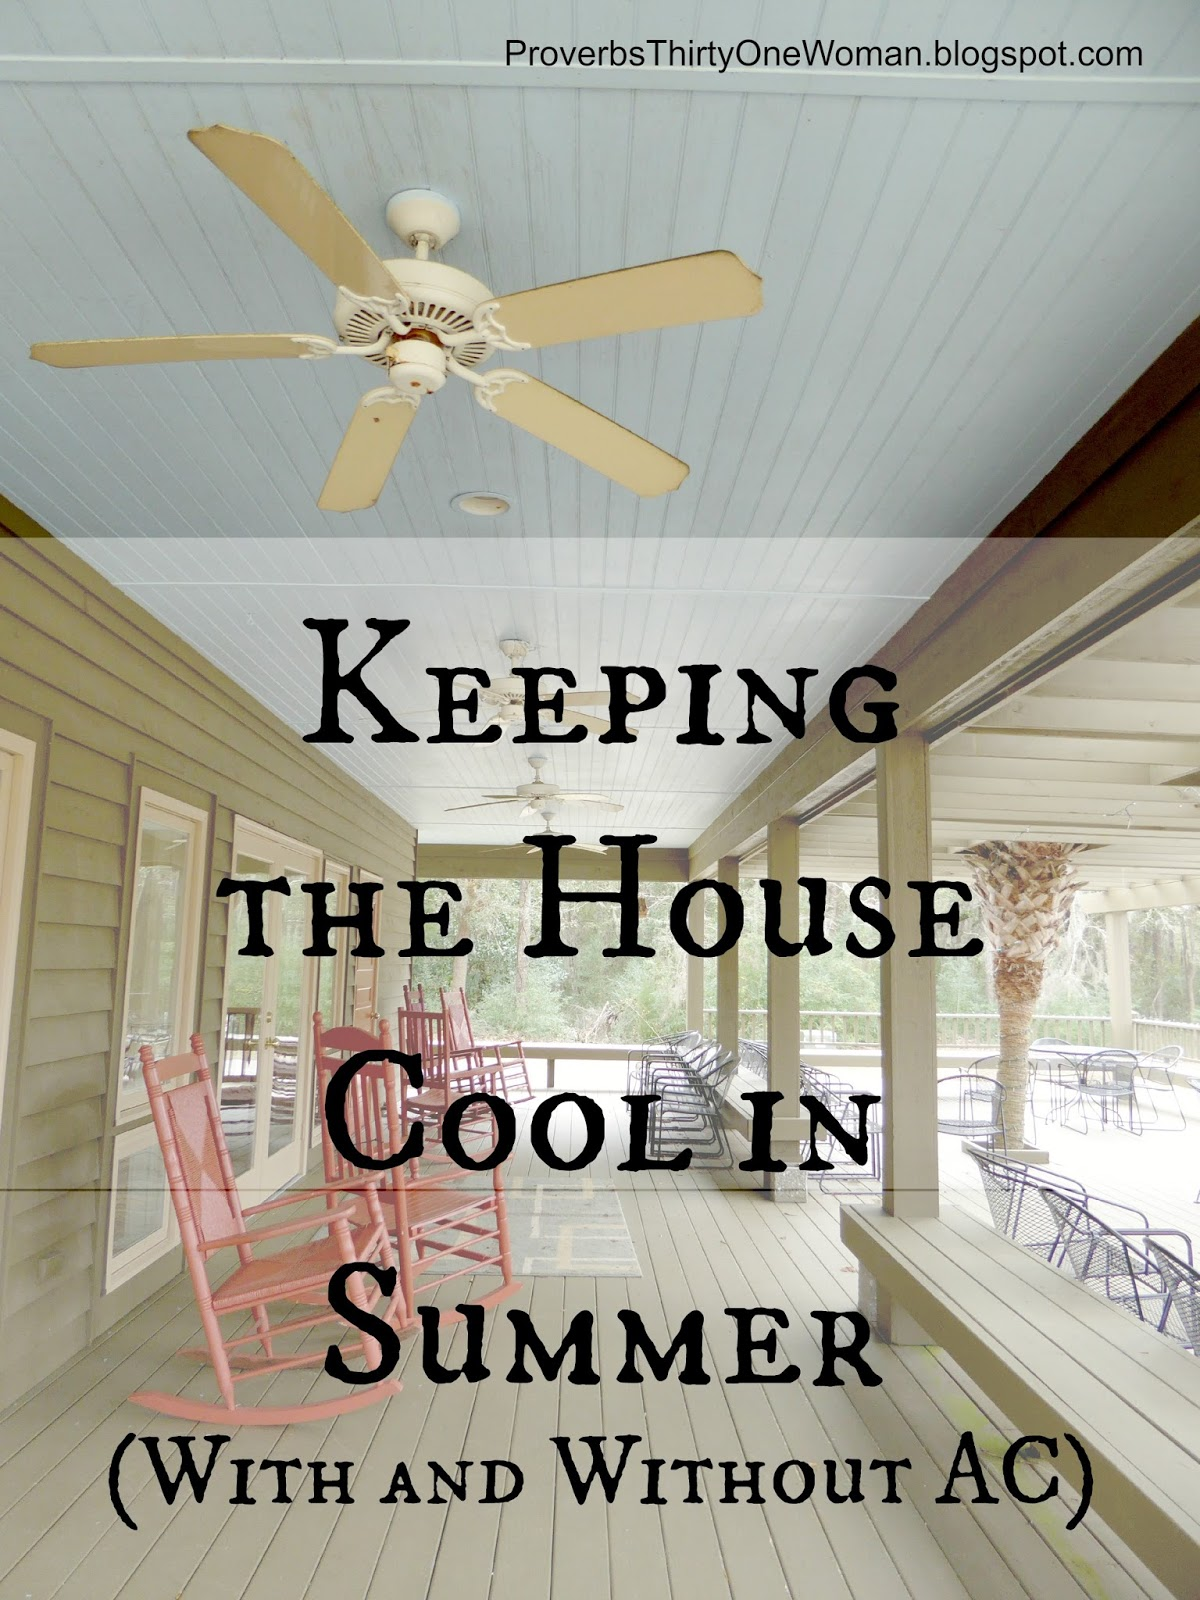 Keeping the house cool in summer with and without ac proverbs 31 woman - Cooling house without ac tips summer ...